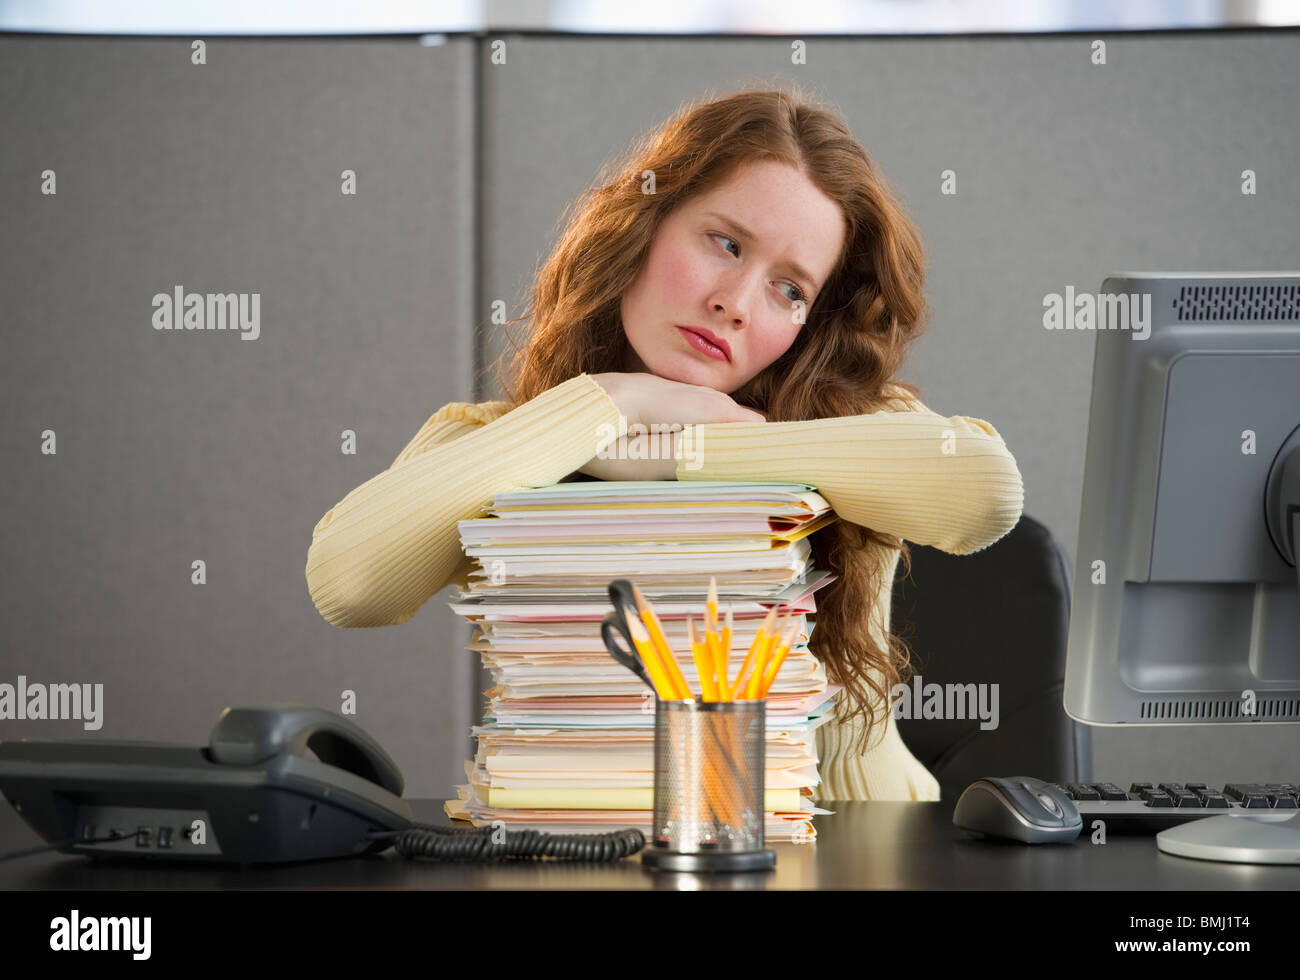 Overworked woman in cubicle - Stock Image